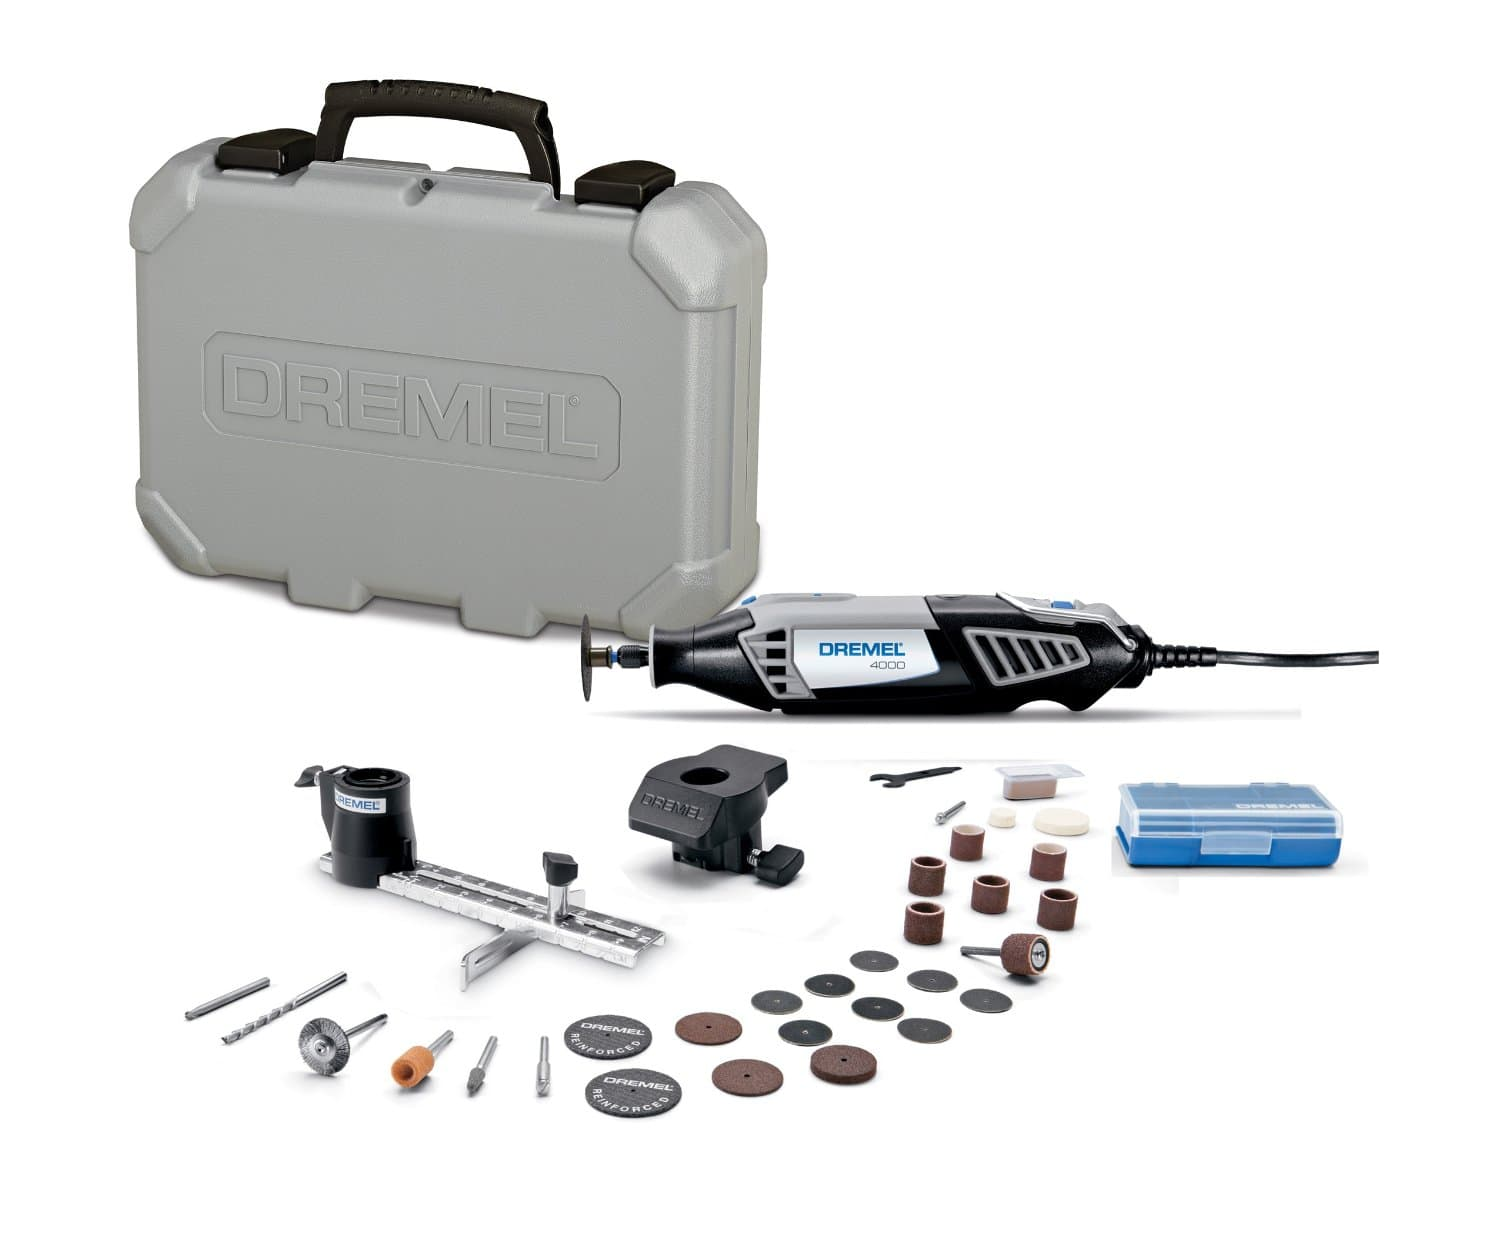 Dremel 4000 2/30 120V Variable Speed Corded Rotary Tool Kit  $60 + Free Shipping